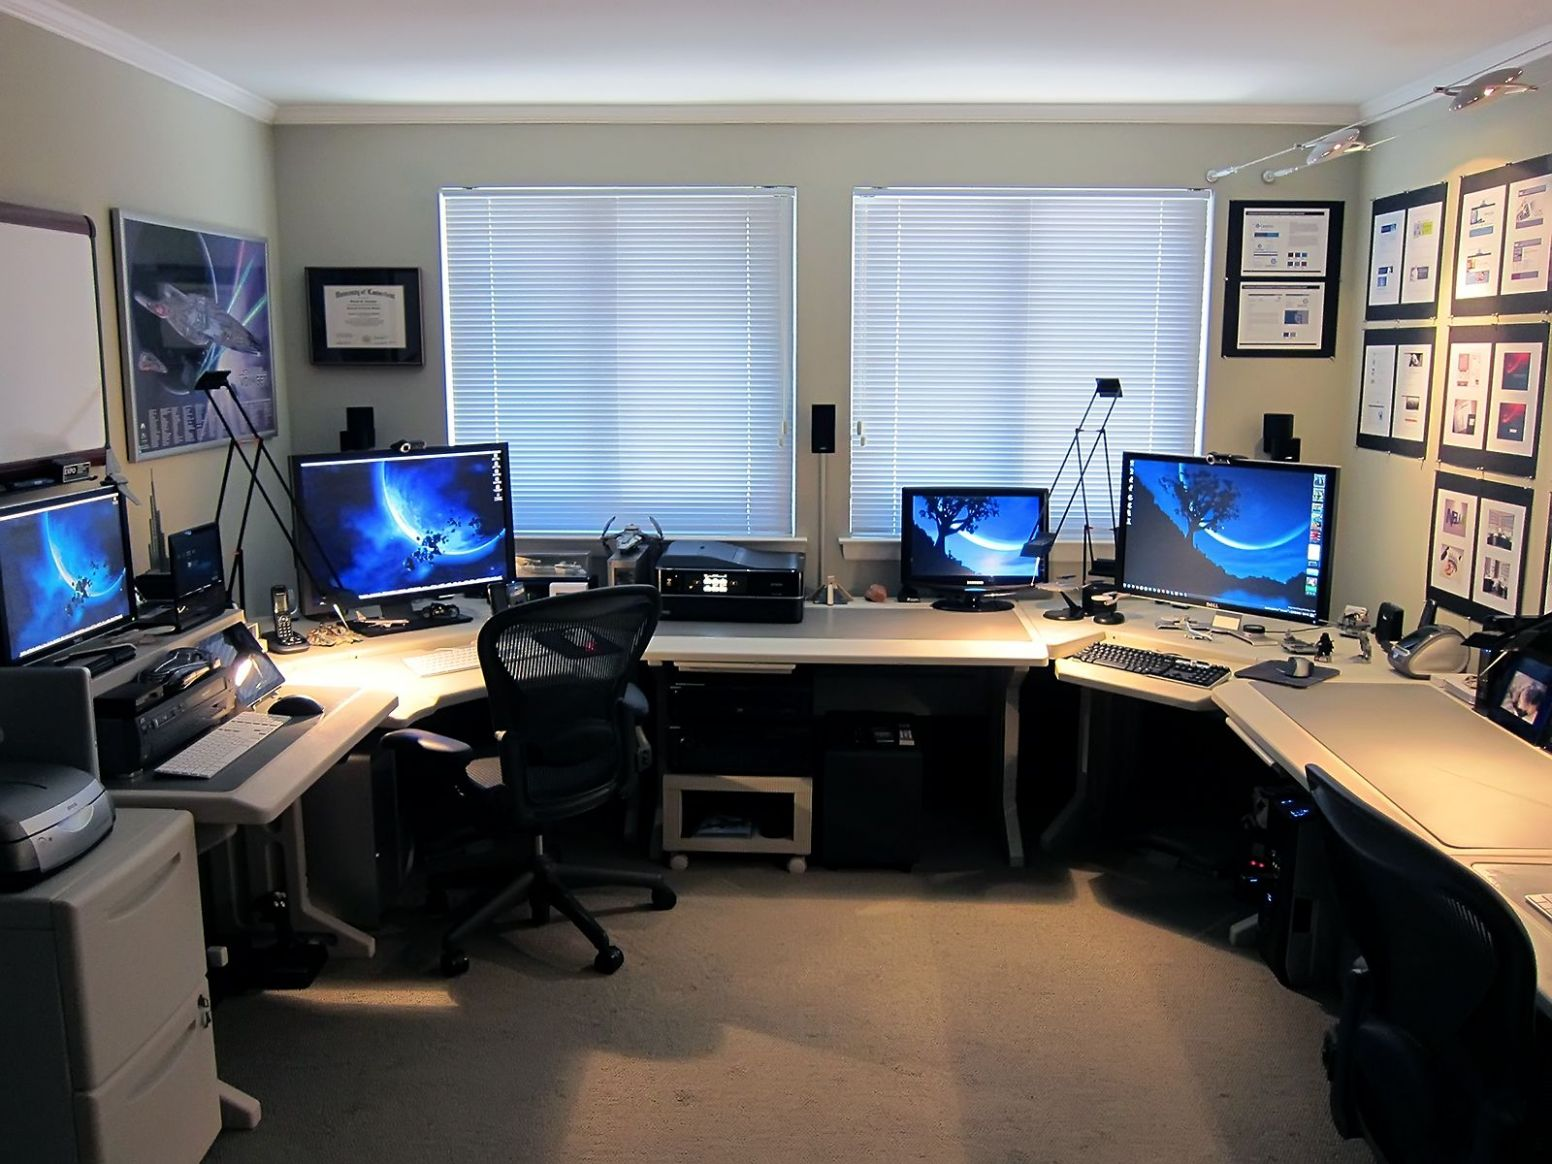 using multiple monitors   Home office setup - home office monitor ideas